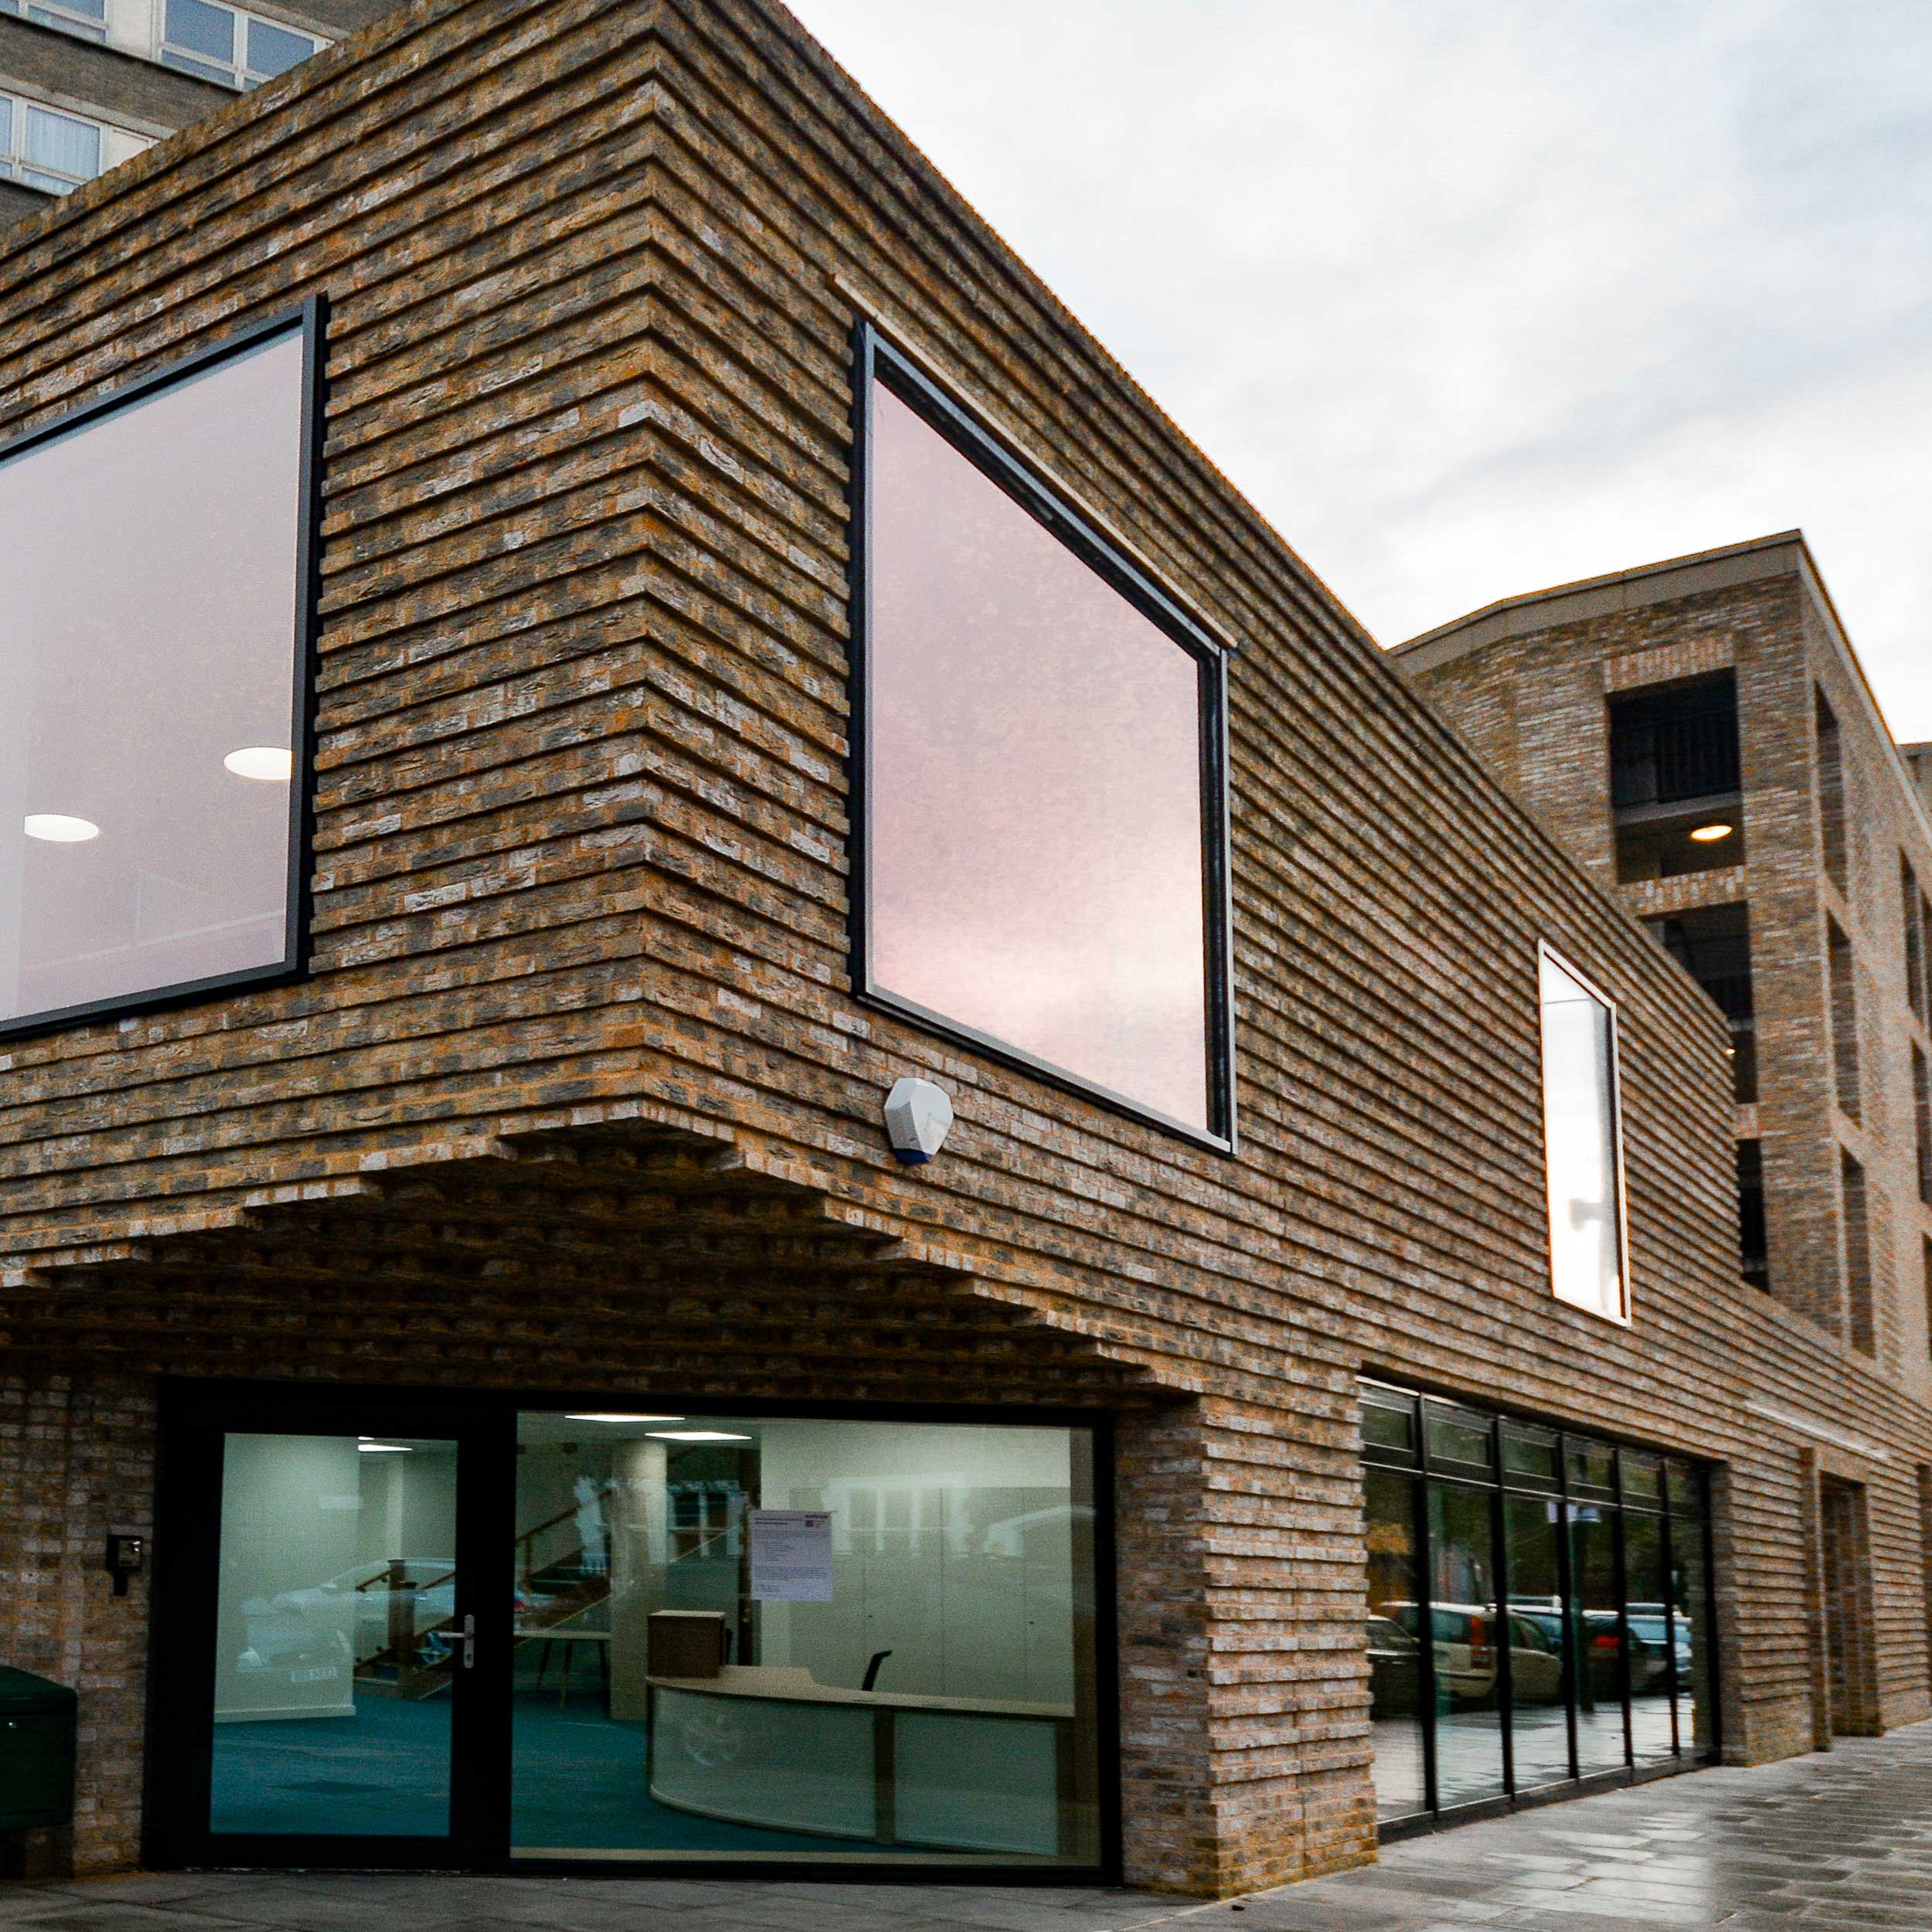 exterior-shot-of-silchester-hub-showing-the-brickwork-and-entrance rainy day